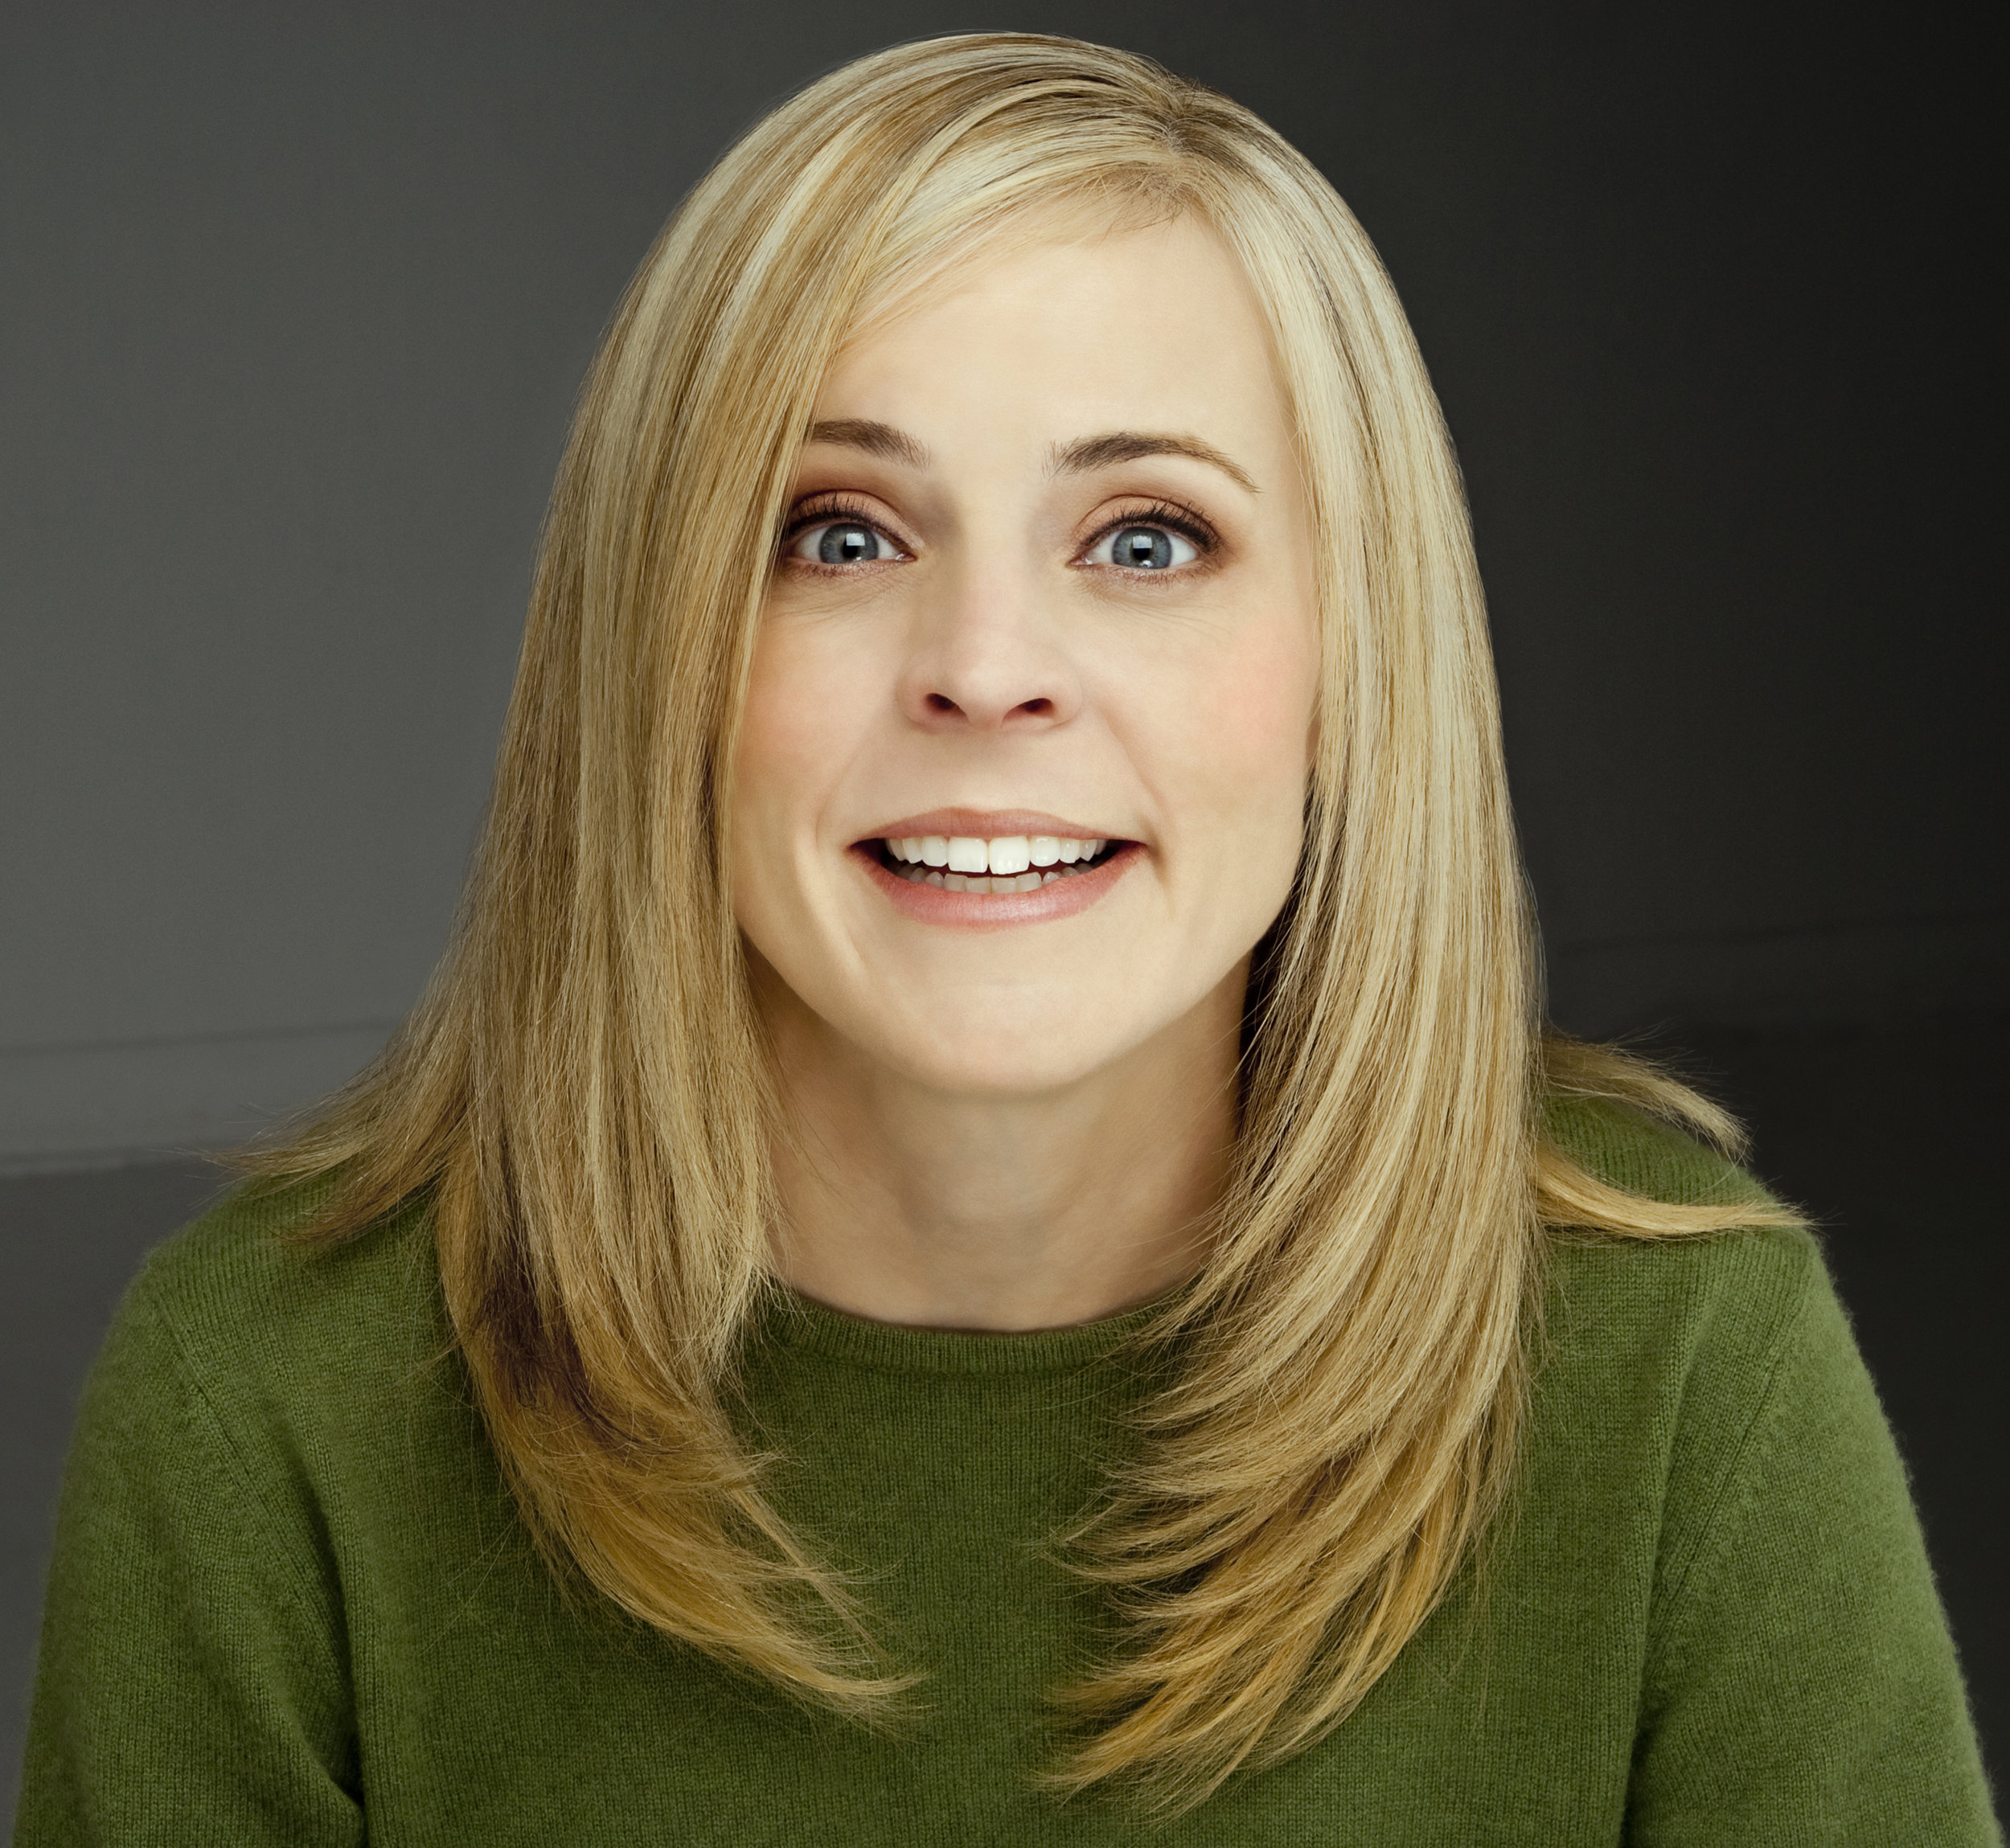 "Maria Bamford is the creator and star of her own Netflix TV Series, the critically acclaimed and brilliant Lady Dynamite! which was recently renewed for a second season.  Maria was named one of Rolling Stone's 50 Funniest People, and is the winner of the 2014 American Comedy Award for Best Club Comic.  She recurred as Debris Bardeaux on Netflix's Arrested Development reboot as well as on fX's Louie and Comedy Central's Kroll Show.  She also created Maria Bamford: the special special special, one of Vulture.com's Top 10 Stand-Up Specials of 2012, and of the cult hit web series The Maria Bamford Show, which screened at the Museum of Art and Design and was described as a ""cold blast of brilliance"" by The New Yorker.   Maria is the first female comic to have two half-hour Comedy Central Presents specials and starred alongside Patton Oswalt, Zach Galifianakis and Brian Posehn in the Comedy Central series The Comedians of Comedy and Netflix's Comedians of Comedy: The Movie.  She has made numerous late-night appearances, most recently on Conan and The Late Late Show with Craig Ferguson.     Maria contributes comedic voiceovers for such animations as Netflix's ""BoJack Horseman,"" Cartoon Network's Adventure Time, PBS's Emmy-winning series Word Girl, Nickelodeon's Kung Fu Panda and Legend of Korra, and Fox's upcoming Golan the Insatiable.  She was also a regular voice on Nickelodeon's CatDog and Back at the Barnyard (in which she reprised the role of Mrs. Beady from the Nick feature Barnyard).    Maria's writing has been featured in The Onion, GQ and LA Weekly.  She can be seen as both herself and her mother in the My Damn Channel web series Ask My Mom.  Her latest CD, Ask Me About My New God! is available on Comedy Central Records.     In terms of showbiz, Maria has made it and is swimming in a gravy boat, filled with scrumptious gravy.  She lives with two overweight dogs and a fiance in Eagle Rock, California.  Go, Las Tiendas de Llantas!"